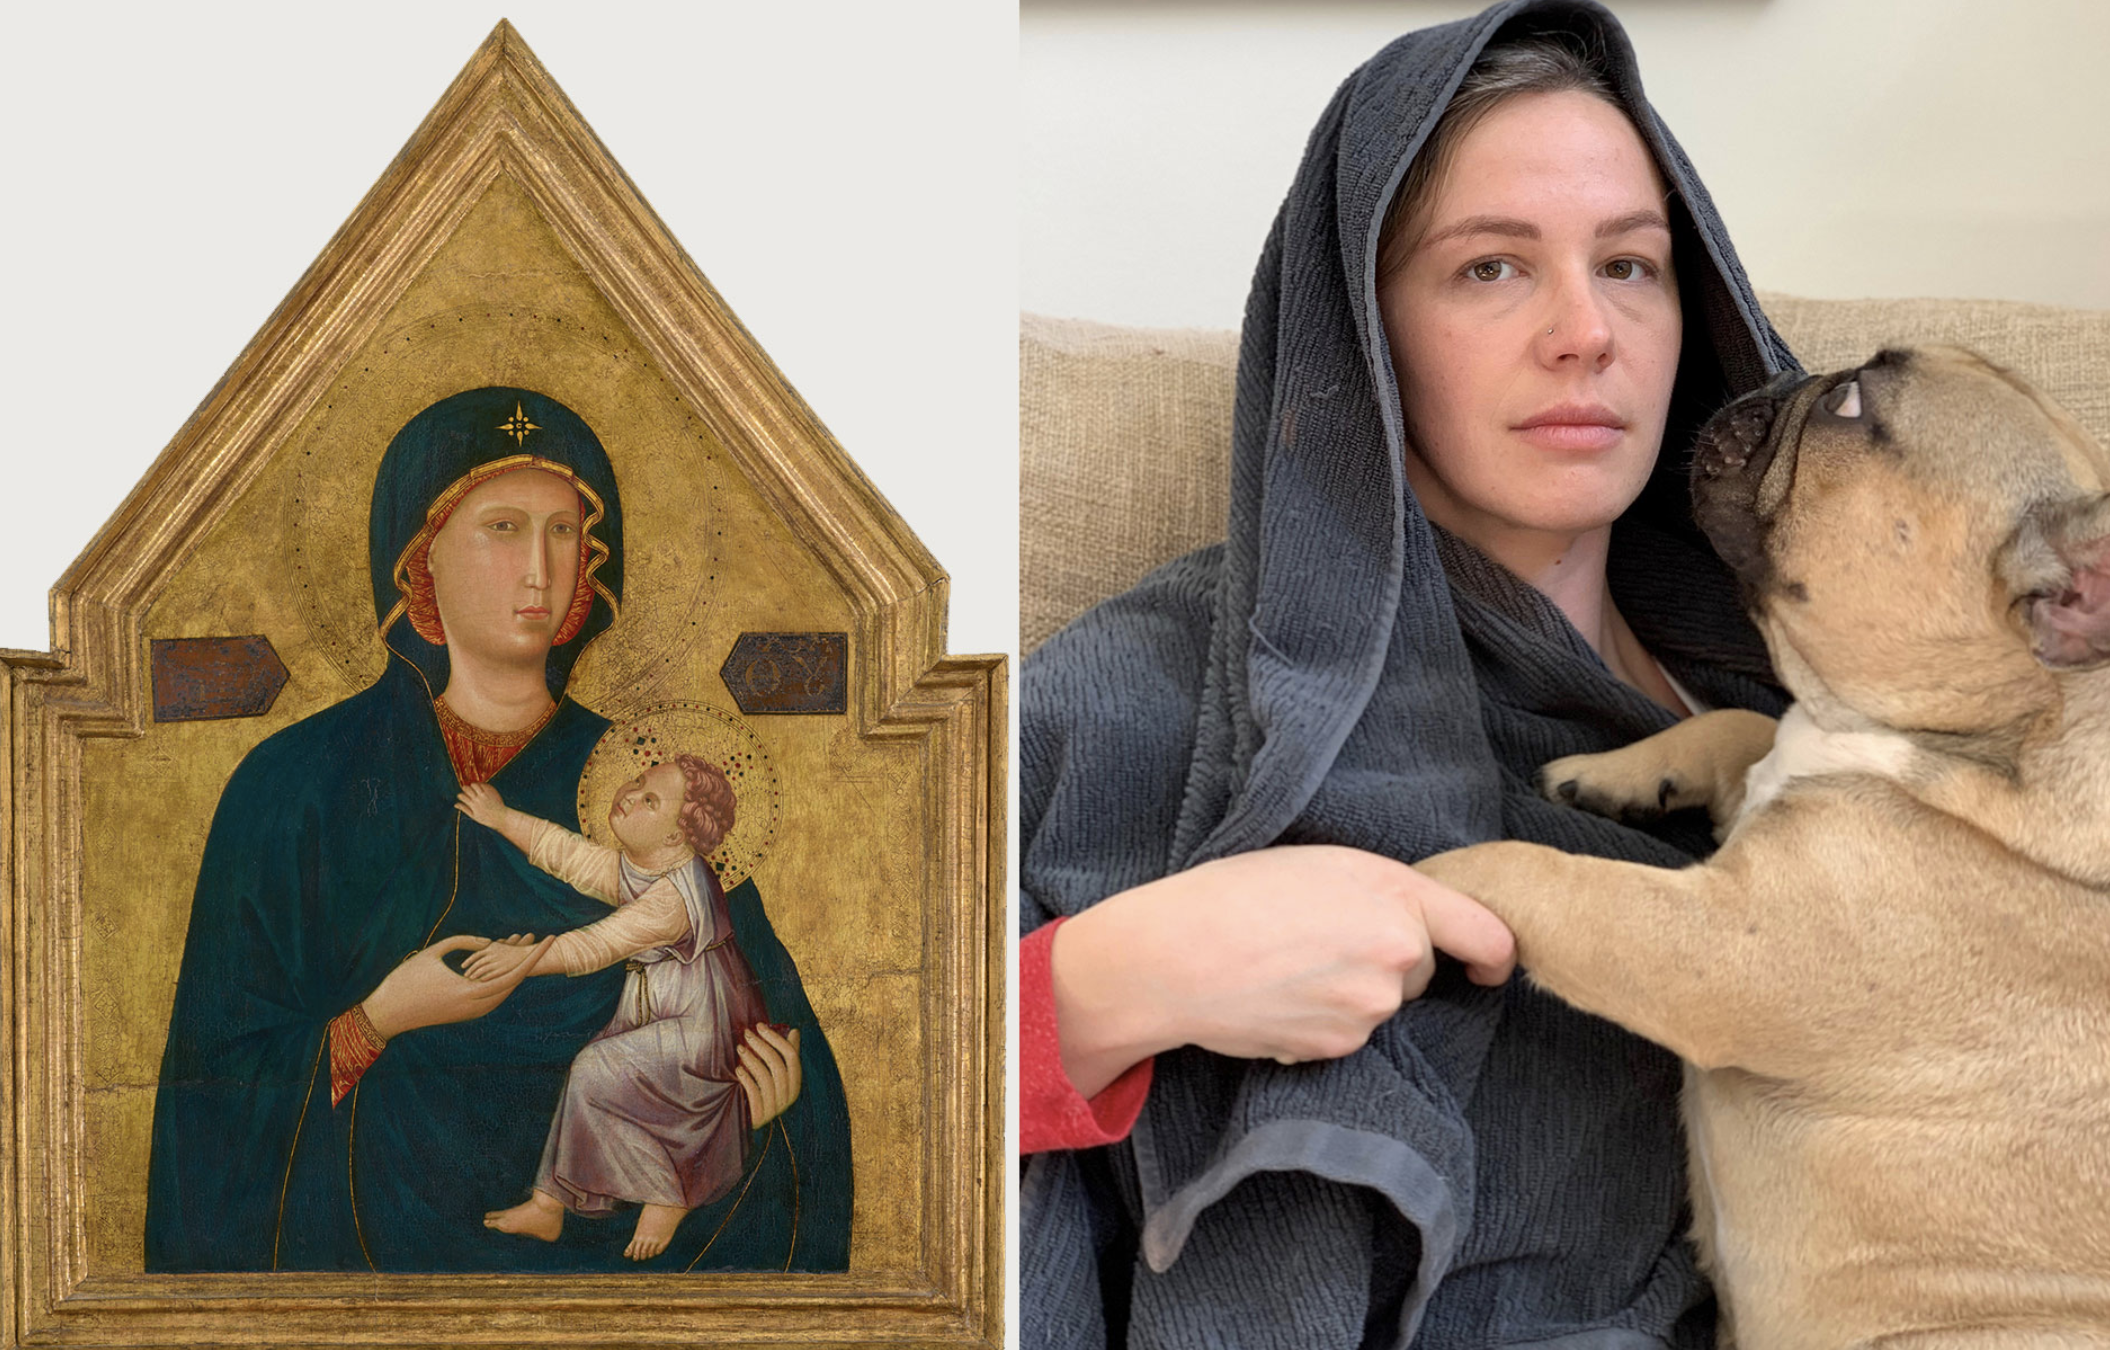 Museum challenges people in self-quarantine to recreate favorite works of art with objects at home